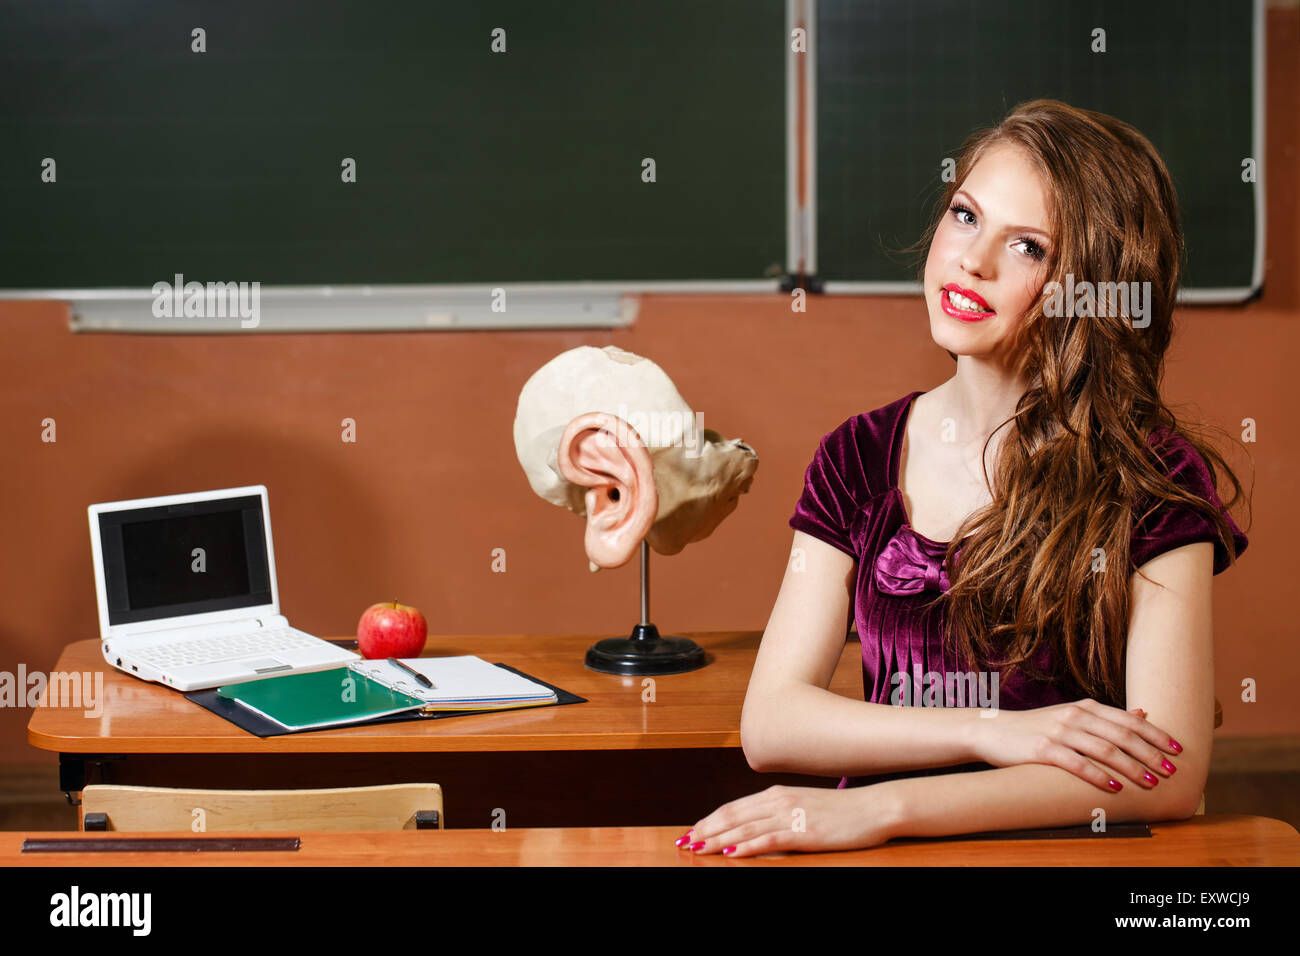 Excellent pupil sitting at a desk. On the table is a layout of the human ear, laptop, notebook and apple. - Stock Image